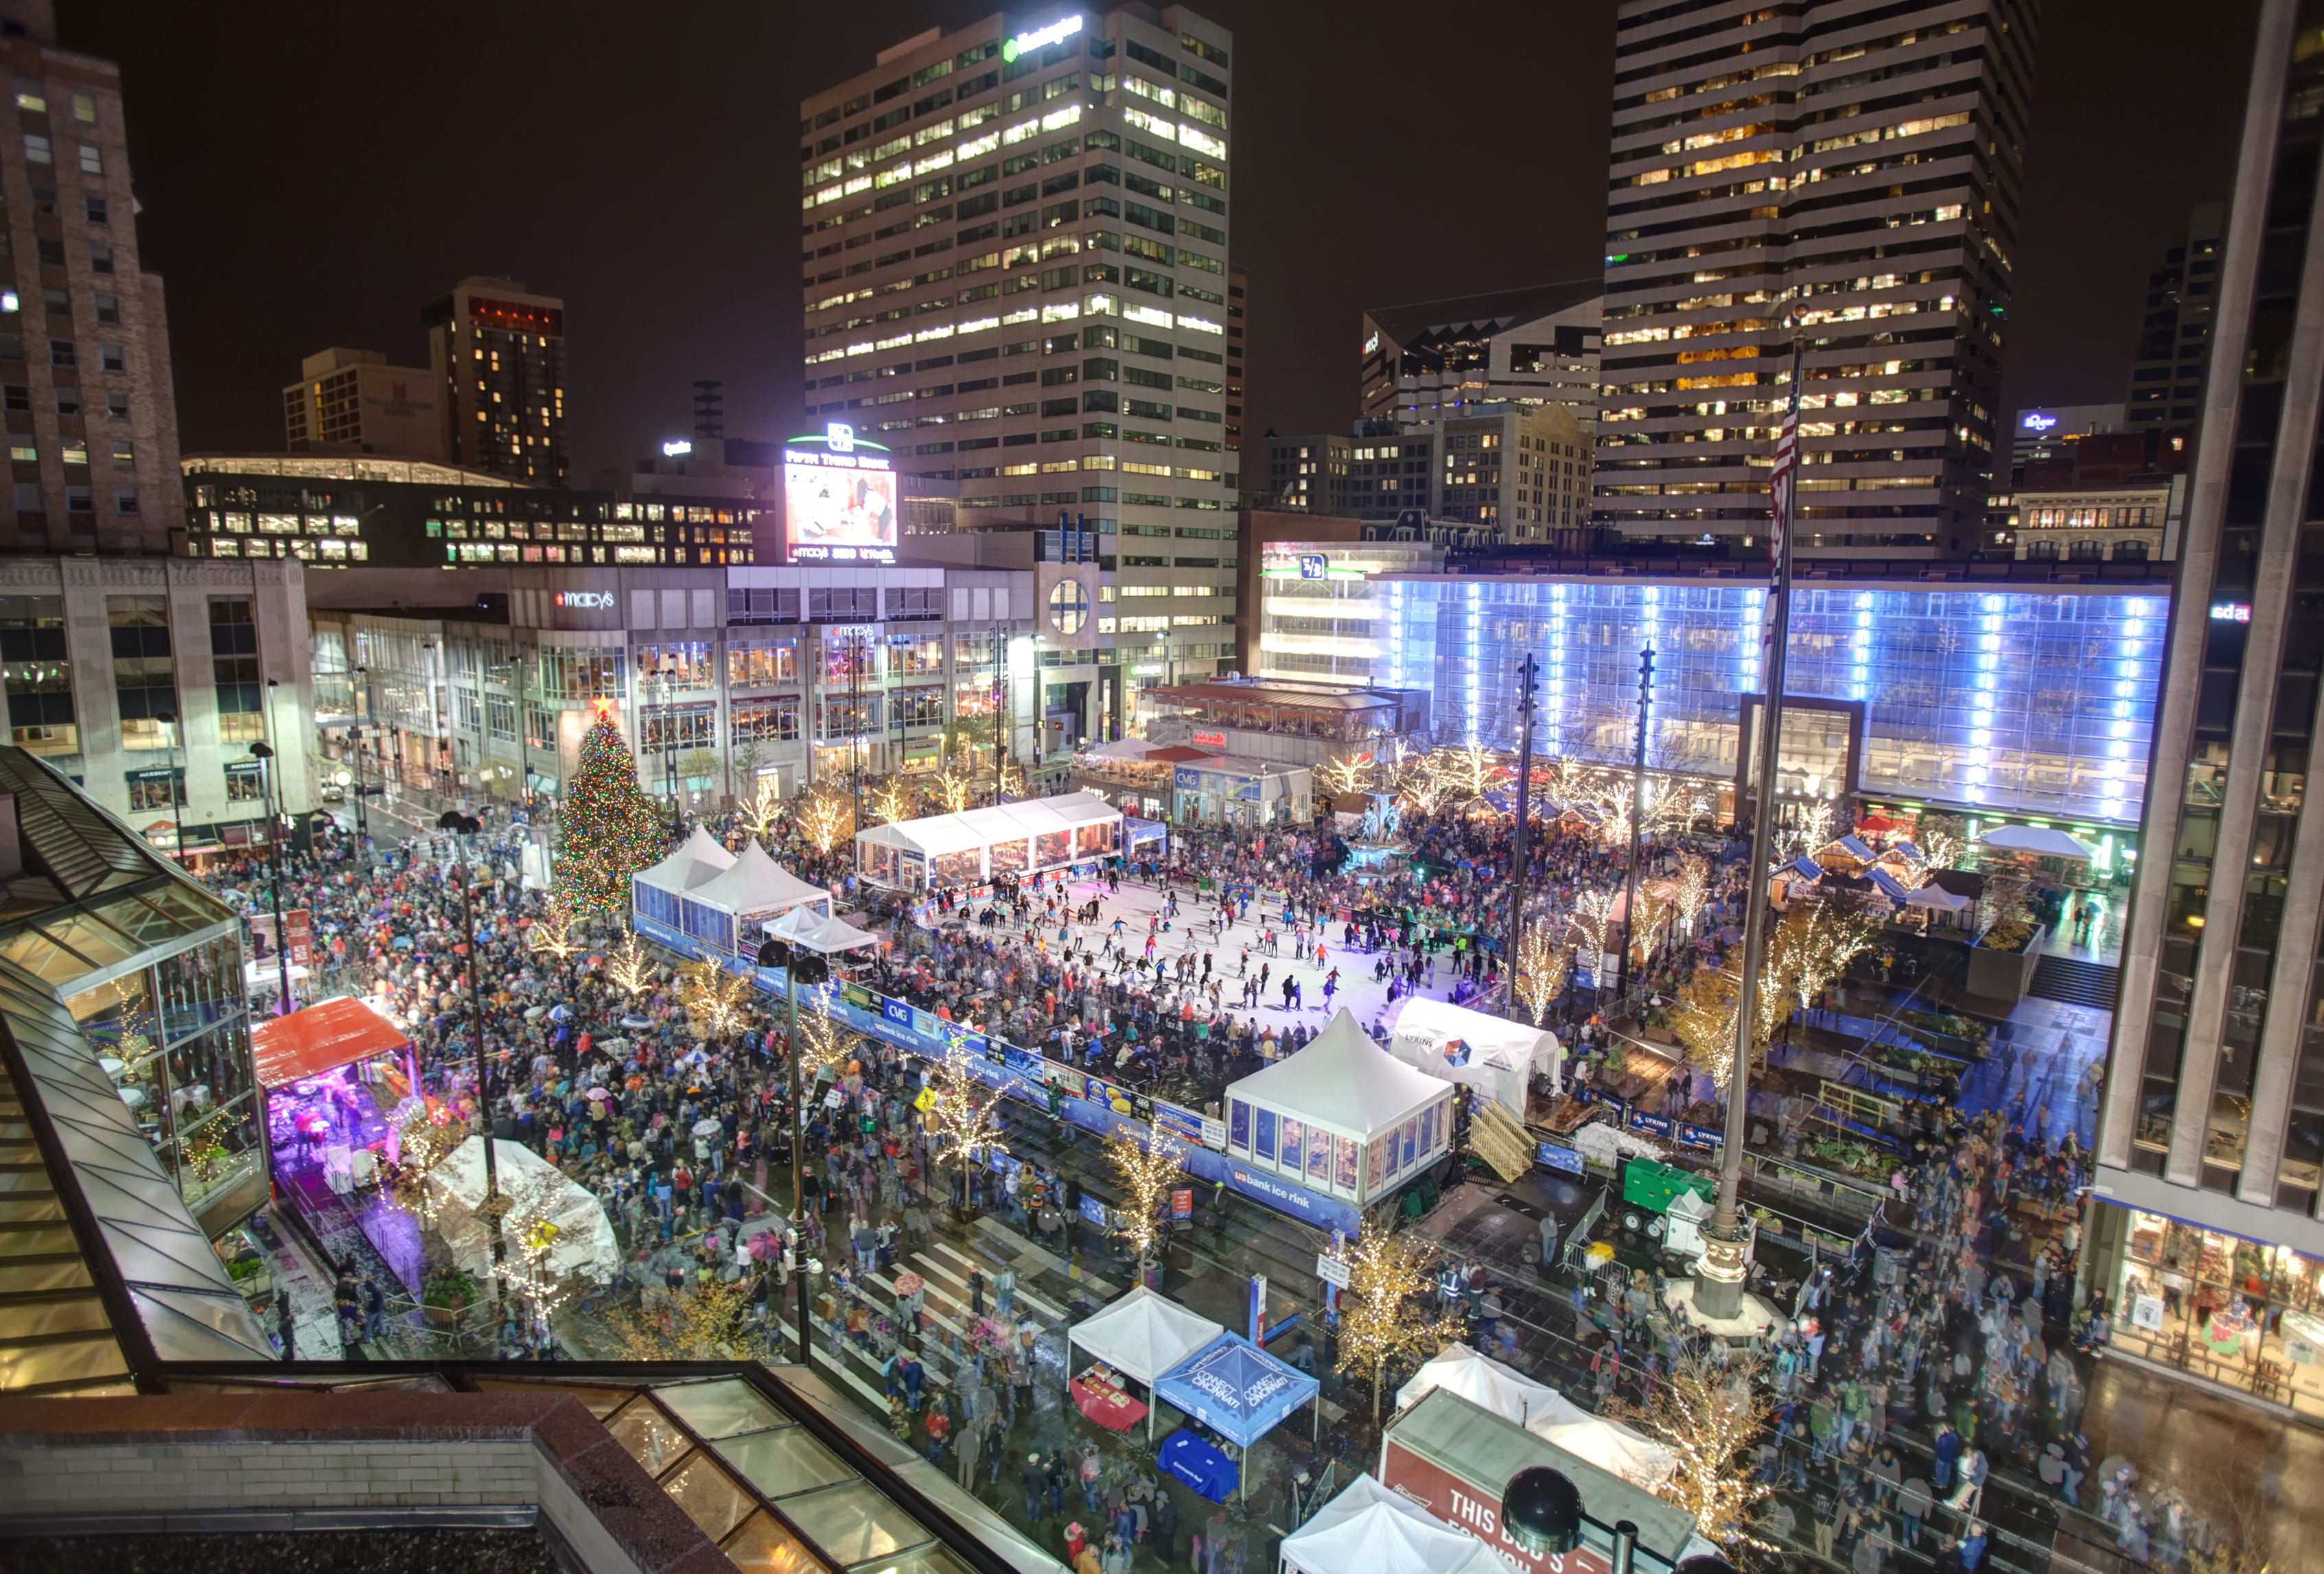 FountainSquareTreeLighting2015 - Photograph © Bruce Crippen